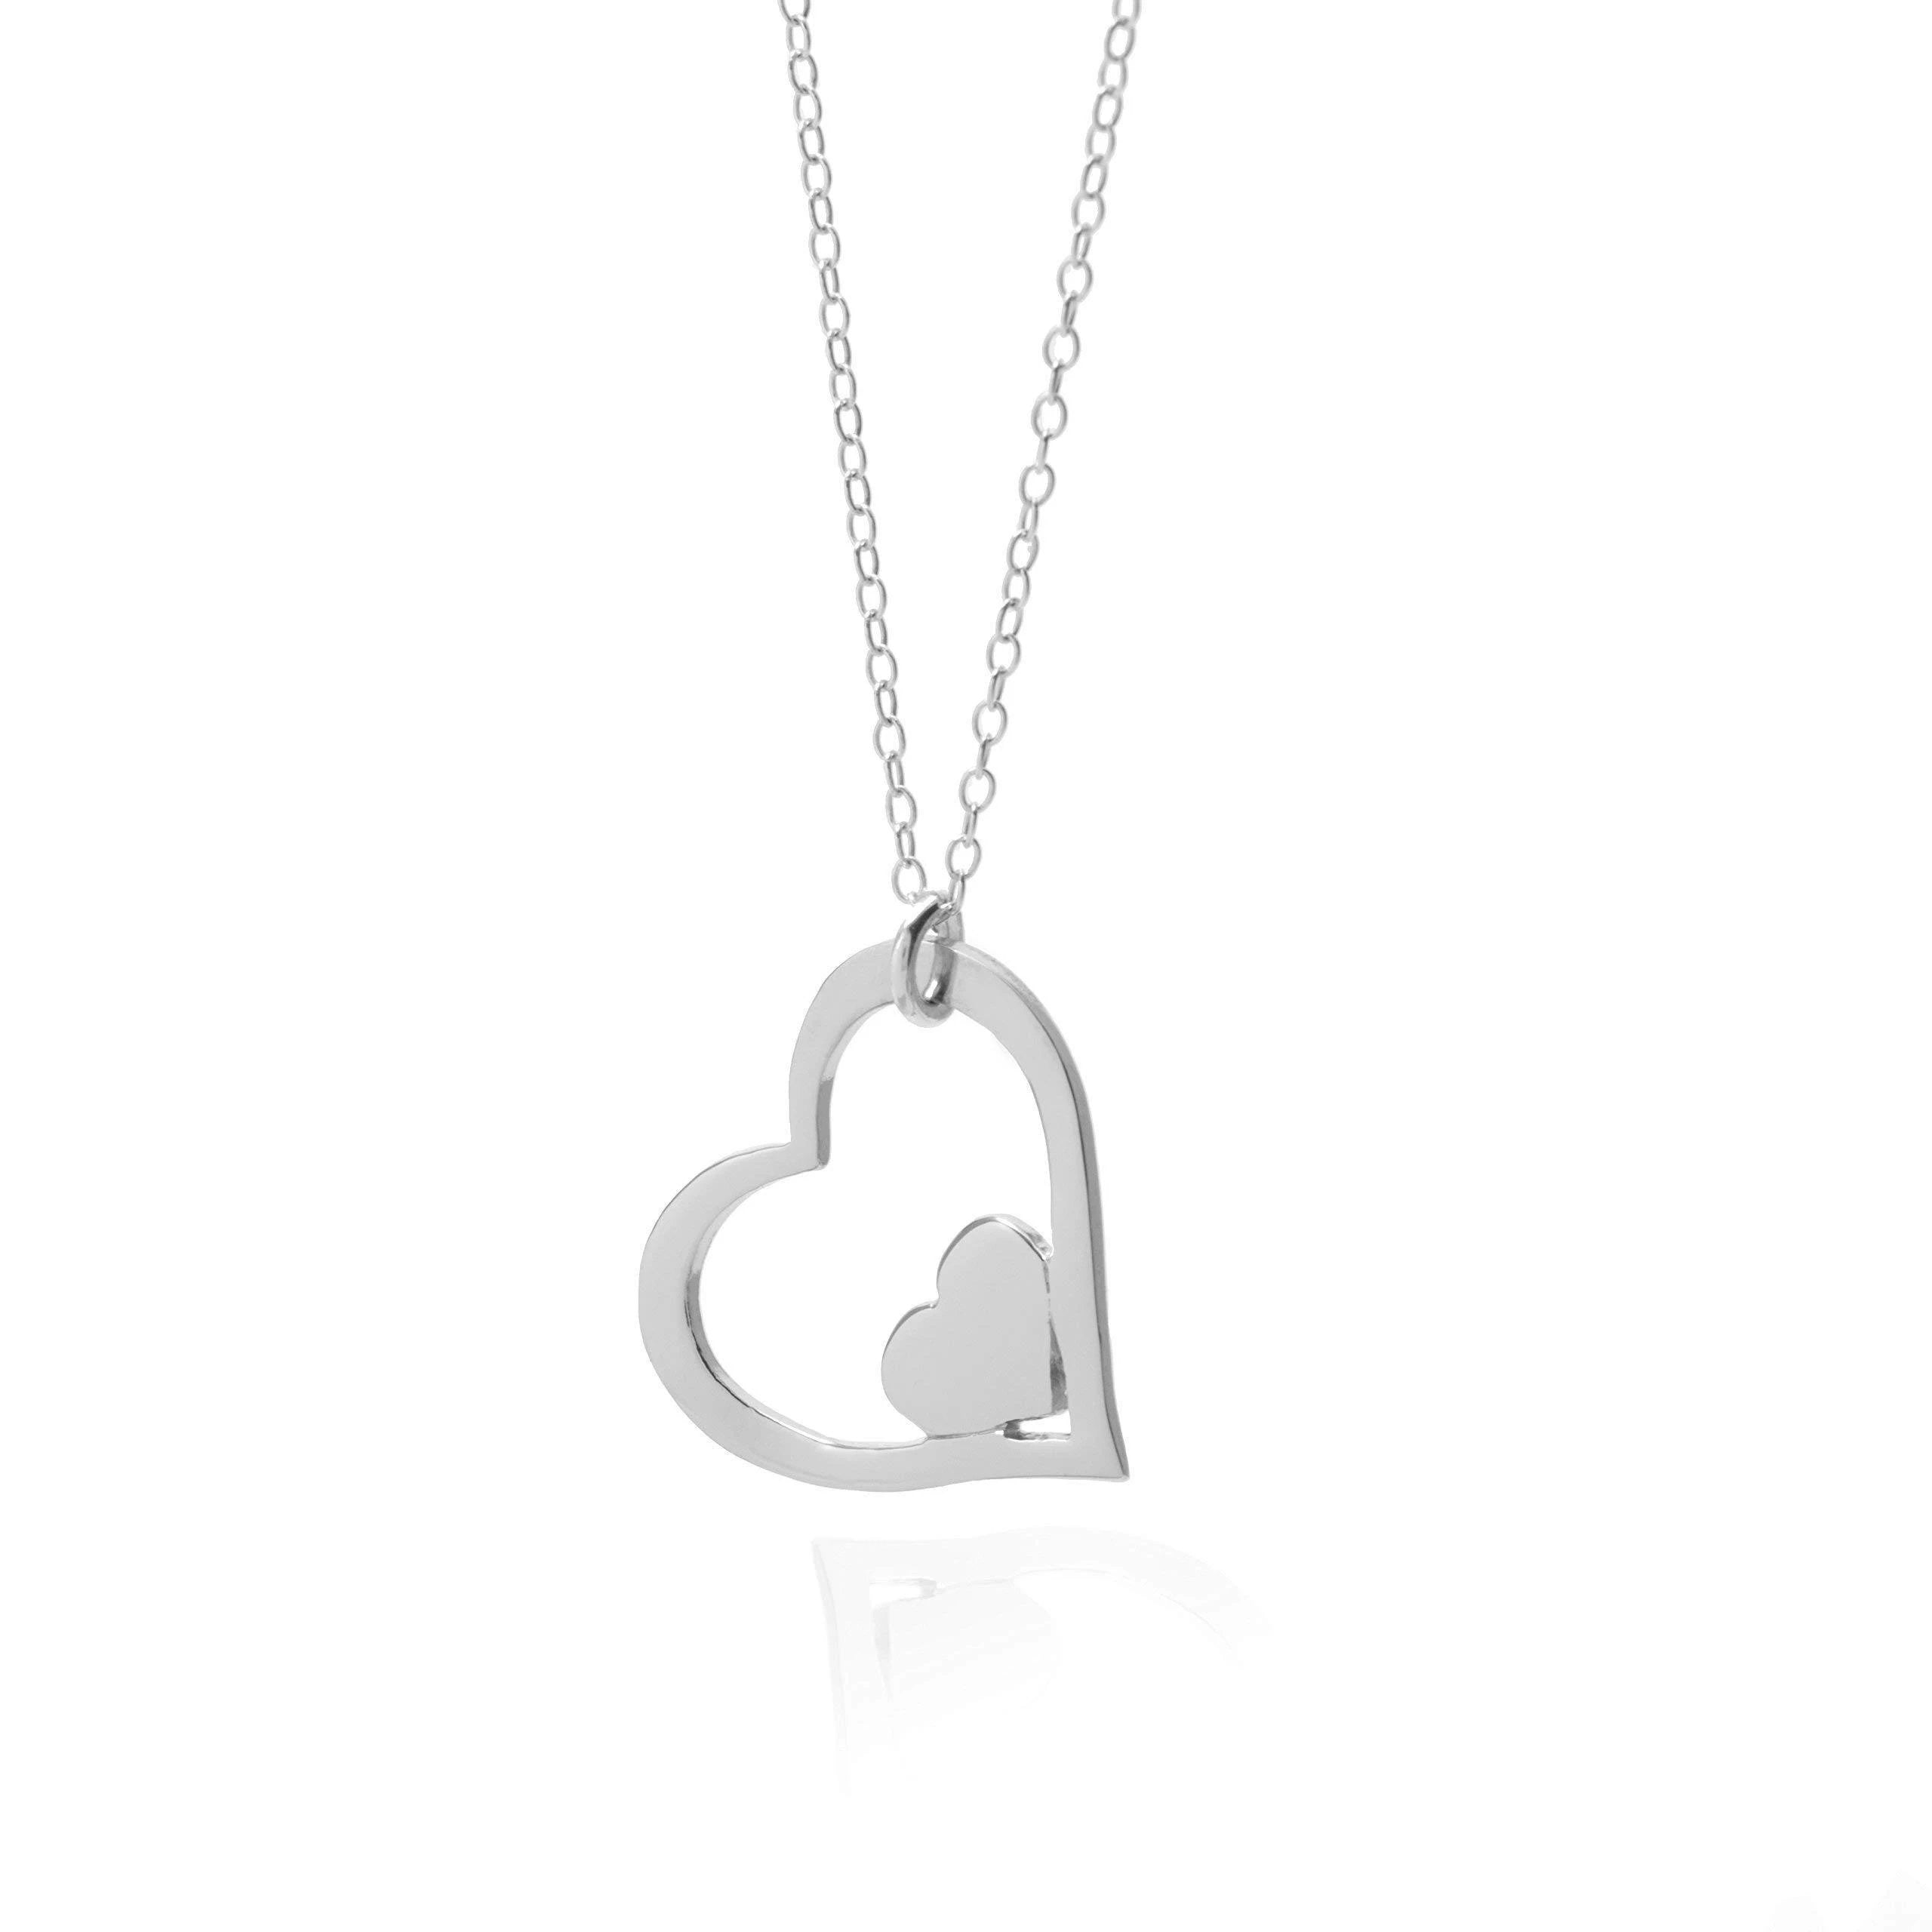 Double Love Heart Necklace - Remembrance Necklace with Adjustable Chain